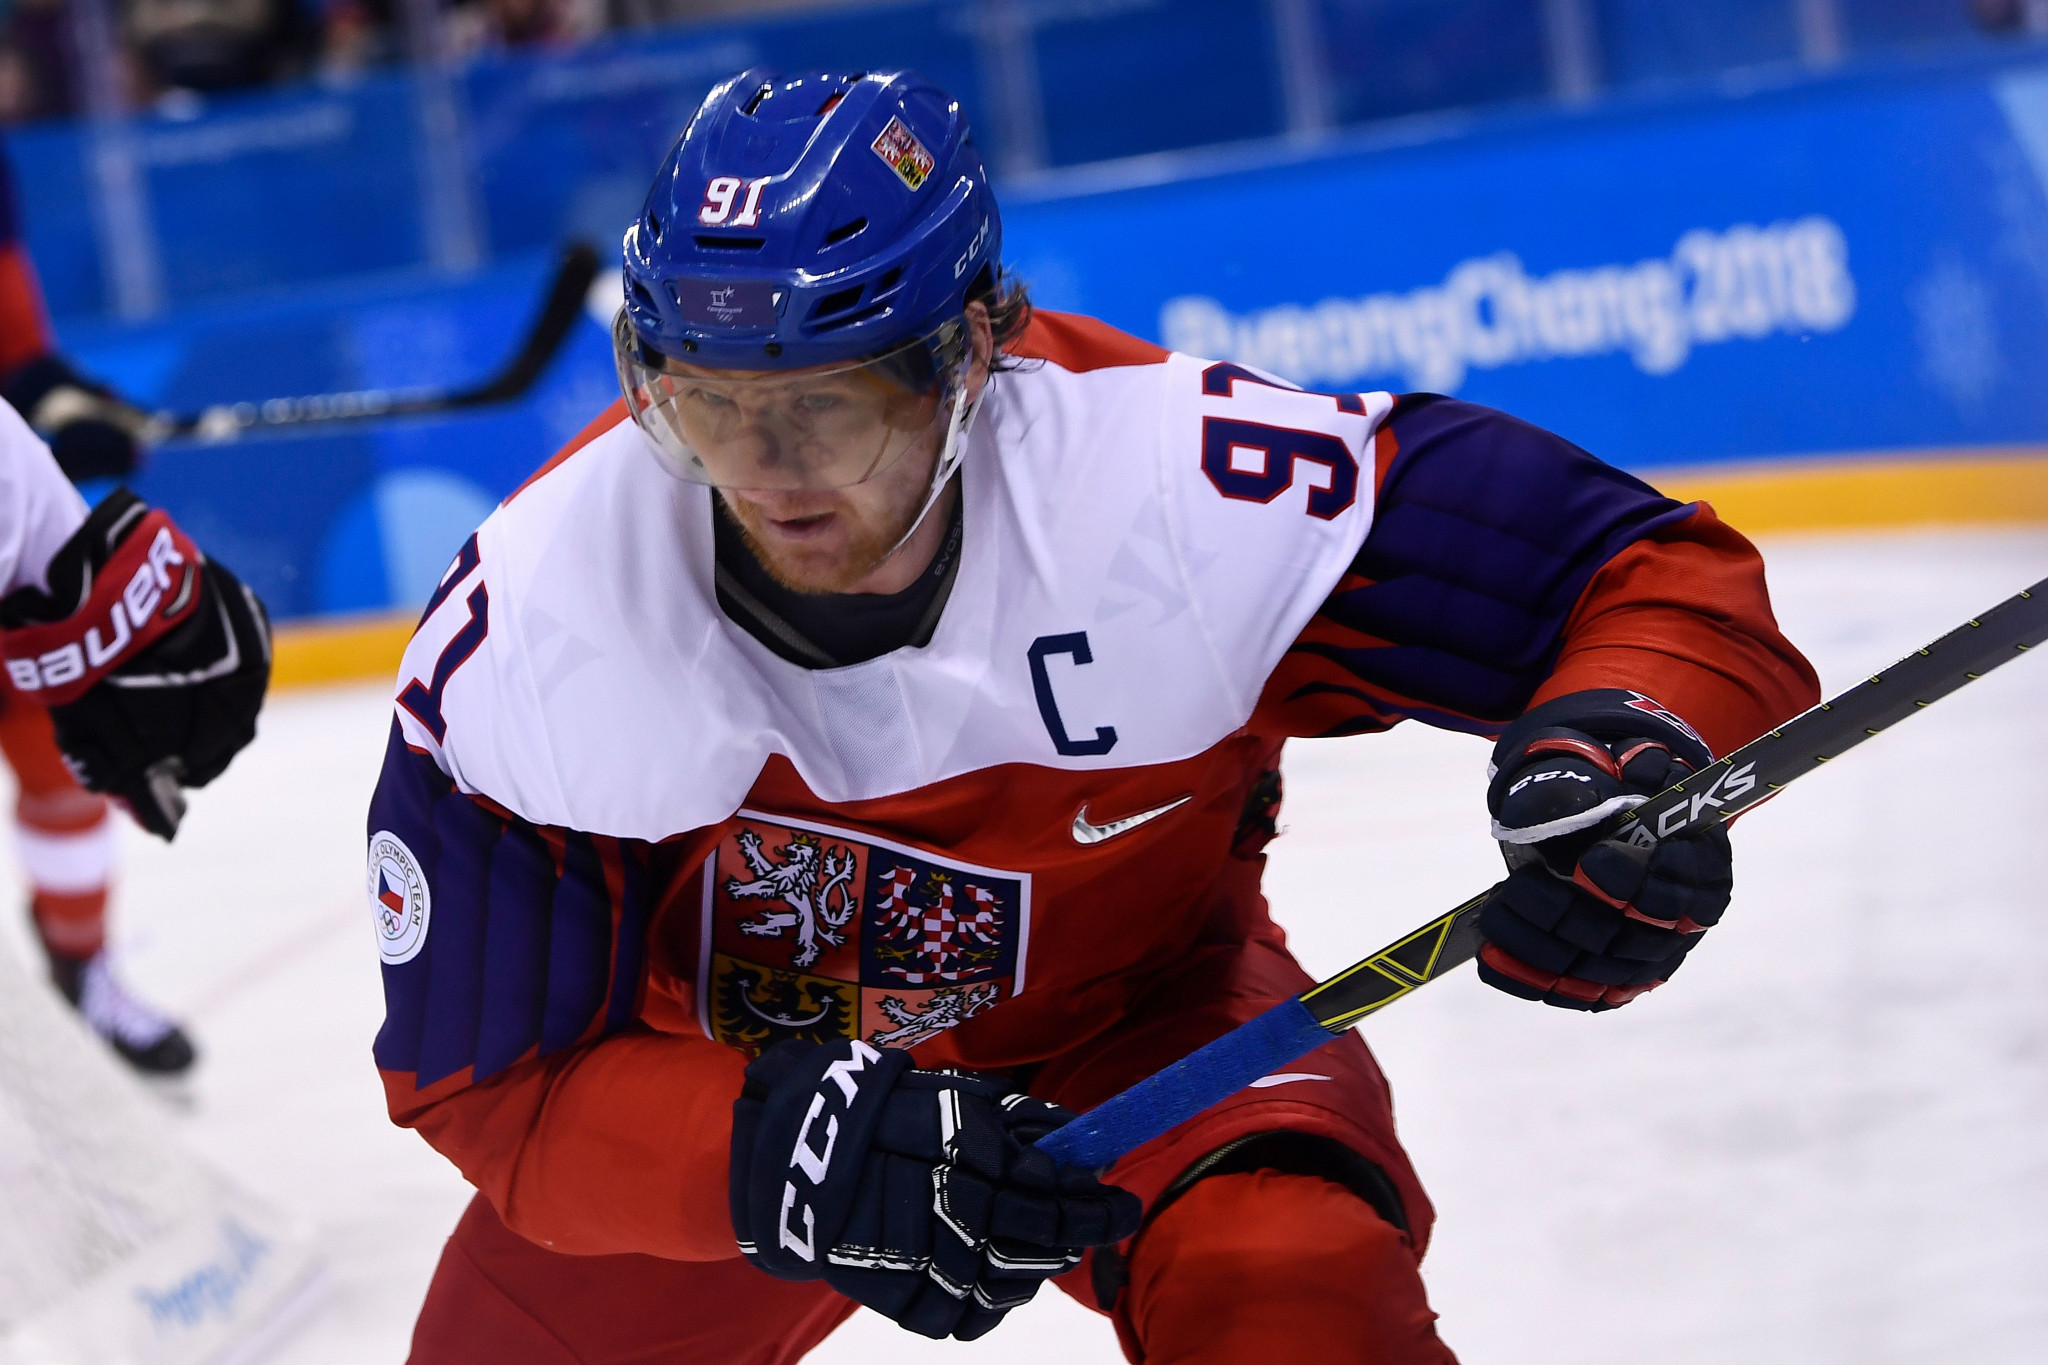 Czech ice hockey player Erat announces retirement